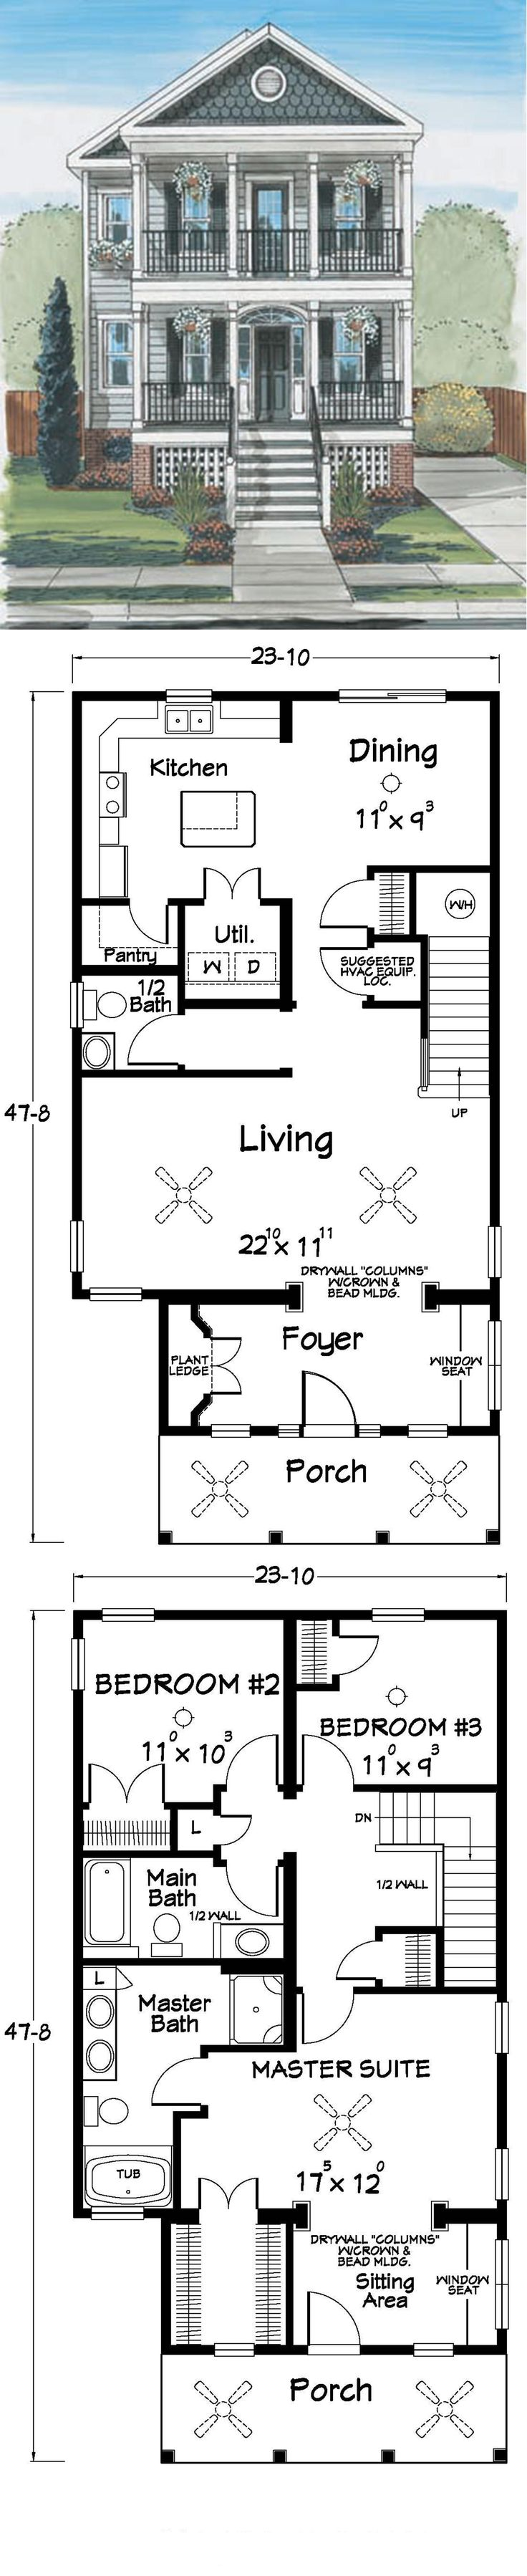 25 best ideas about second floor addition on pinterest for Second floor addition plans